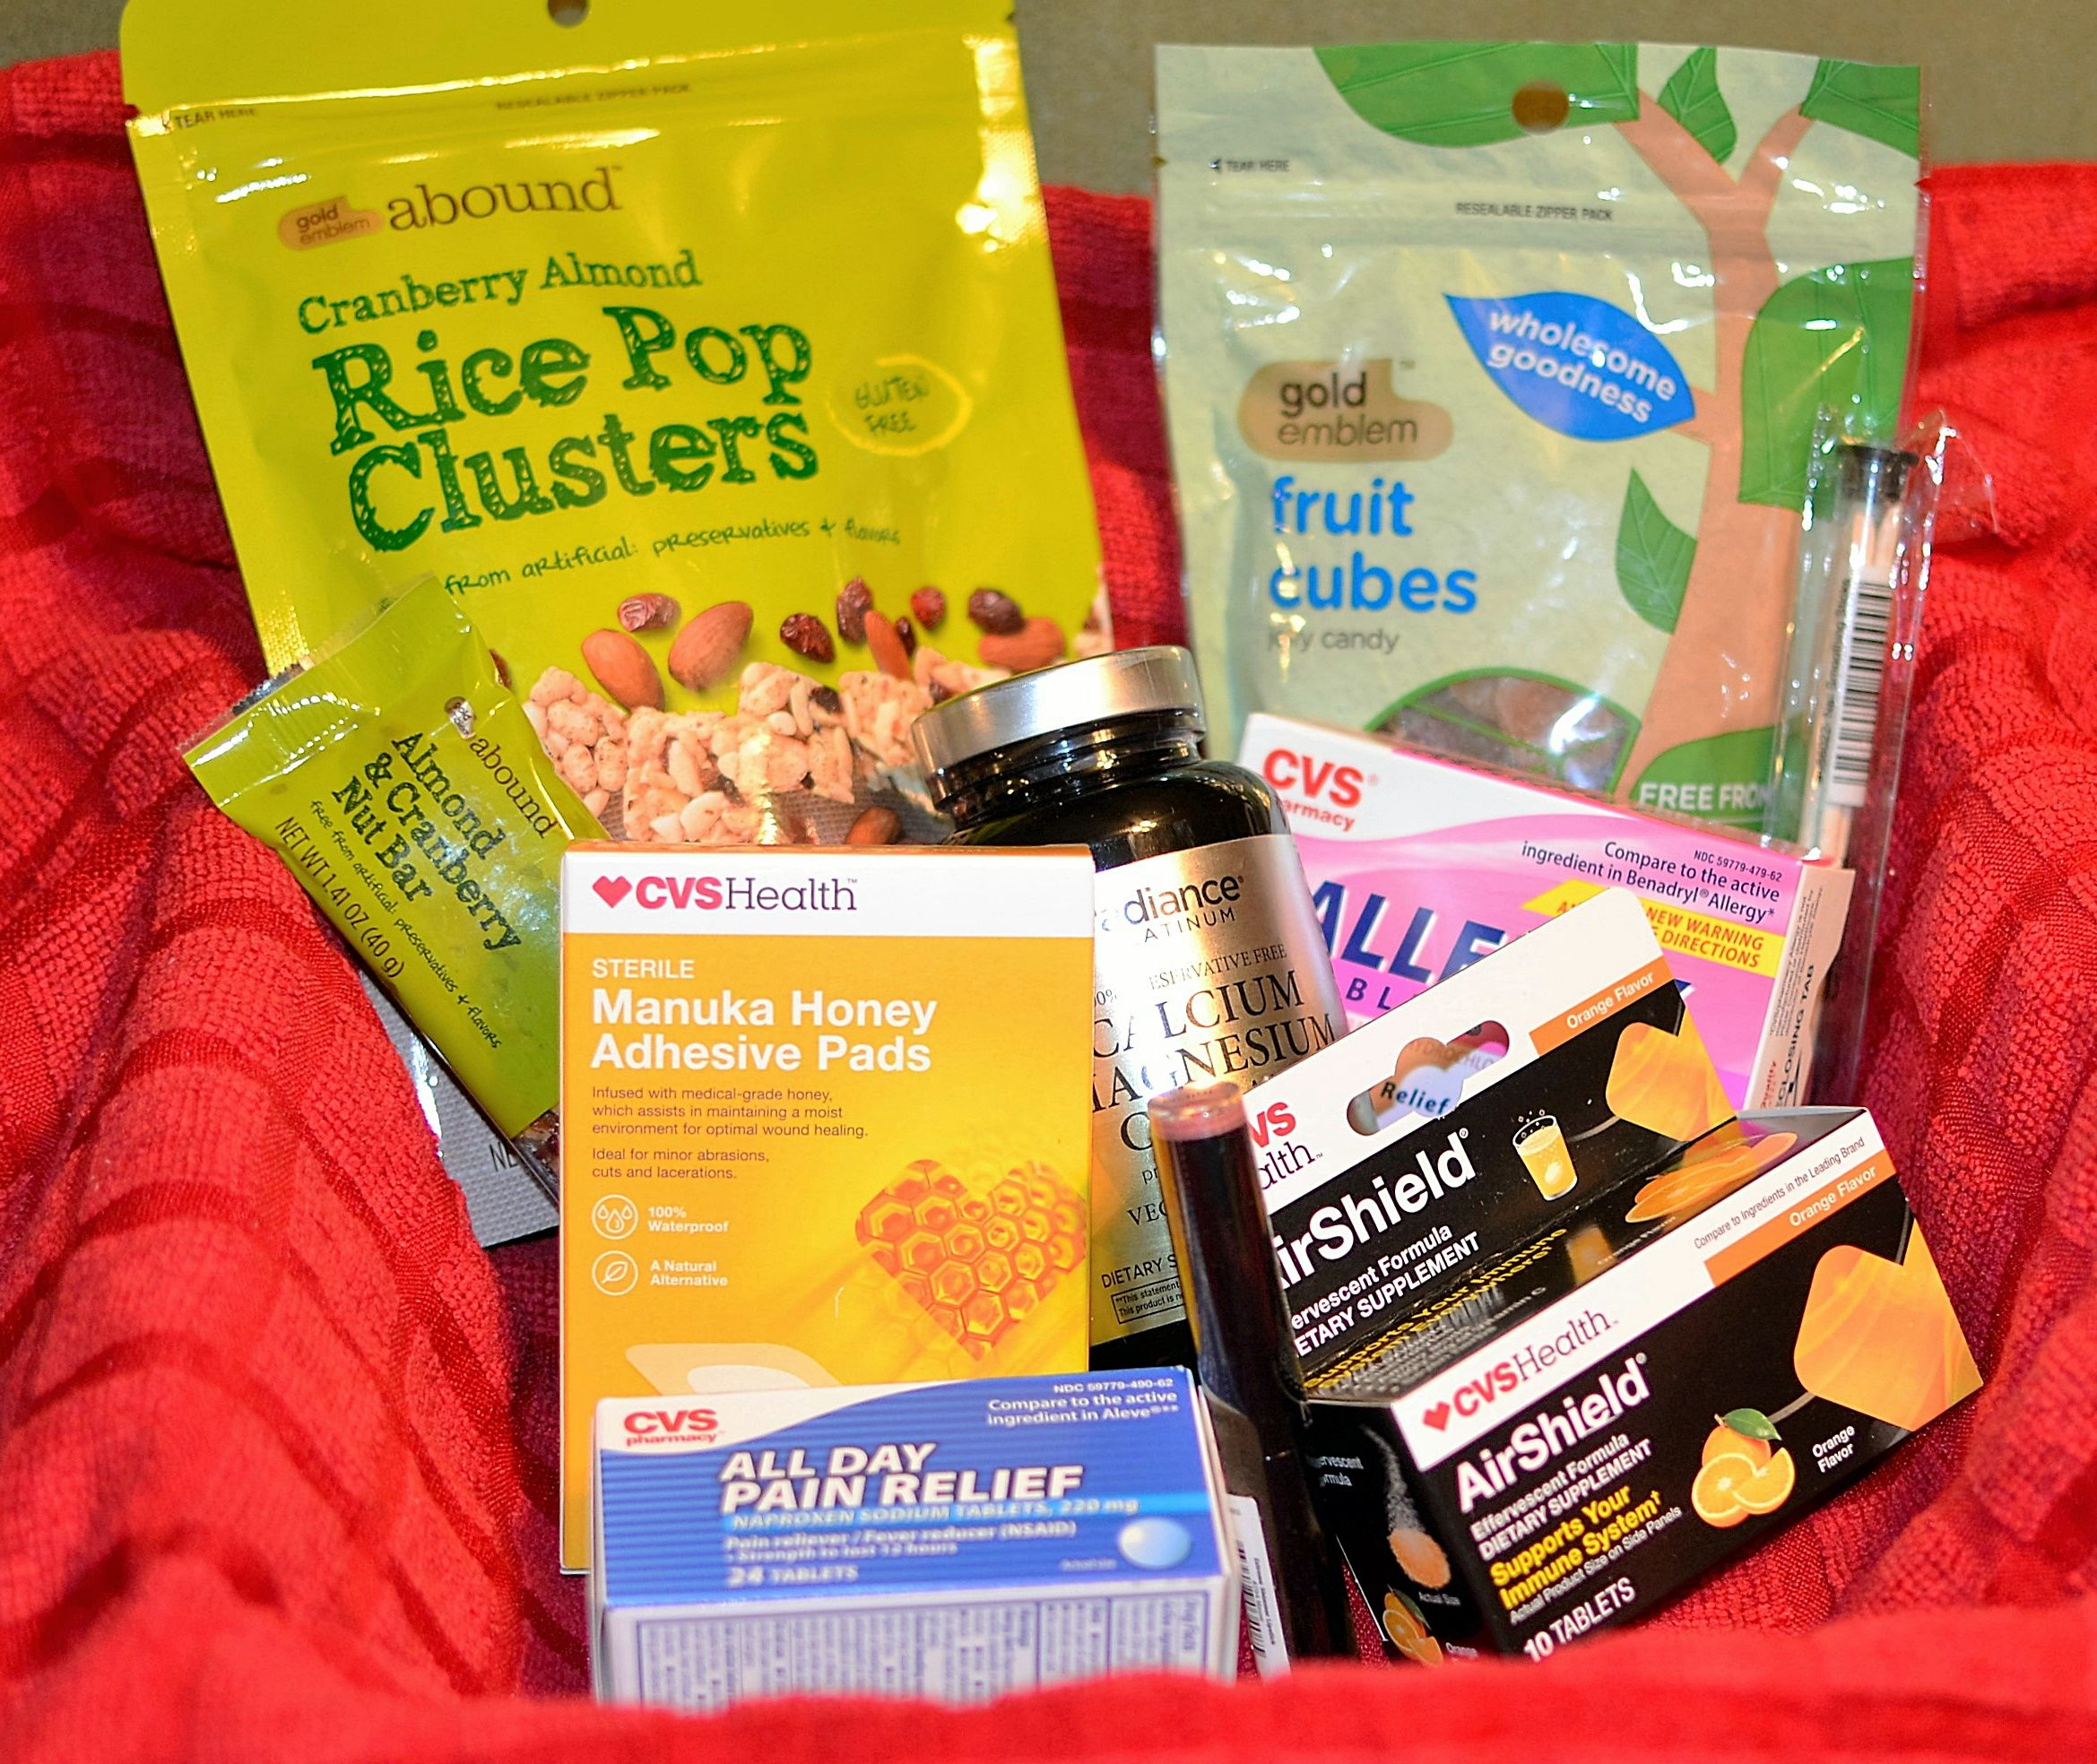 Cvs Wellness Prize Pack 25 Gift Card Giveaway Findyourhealthy 1 4